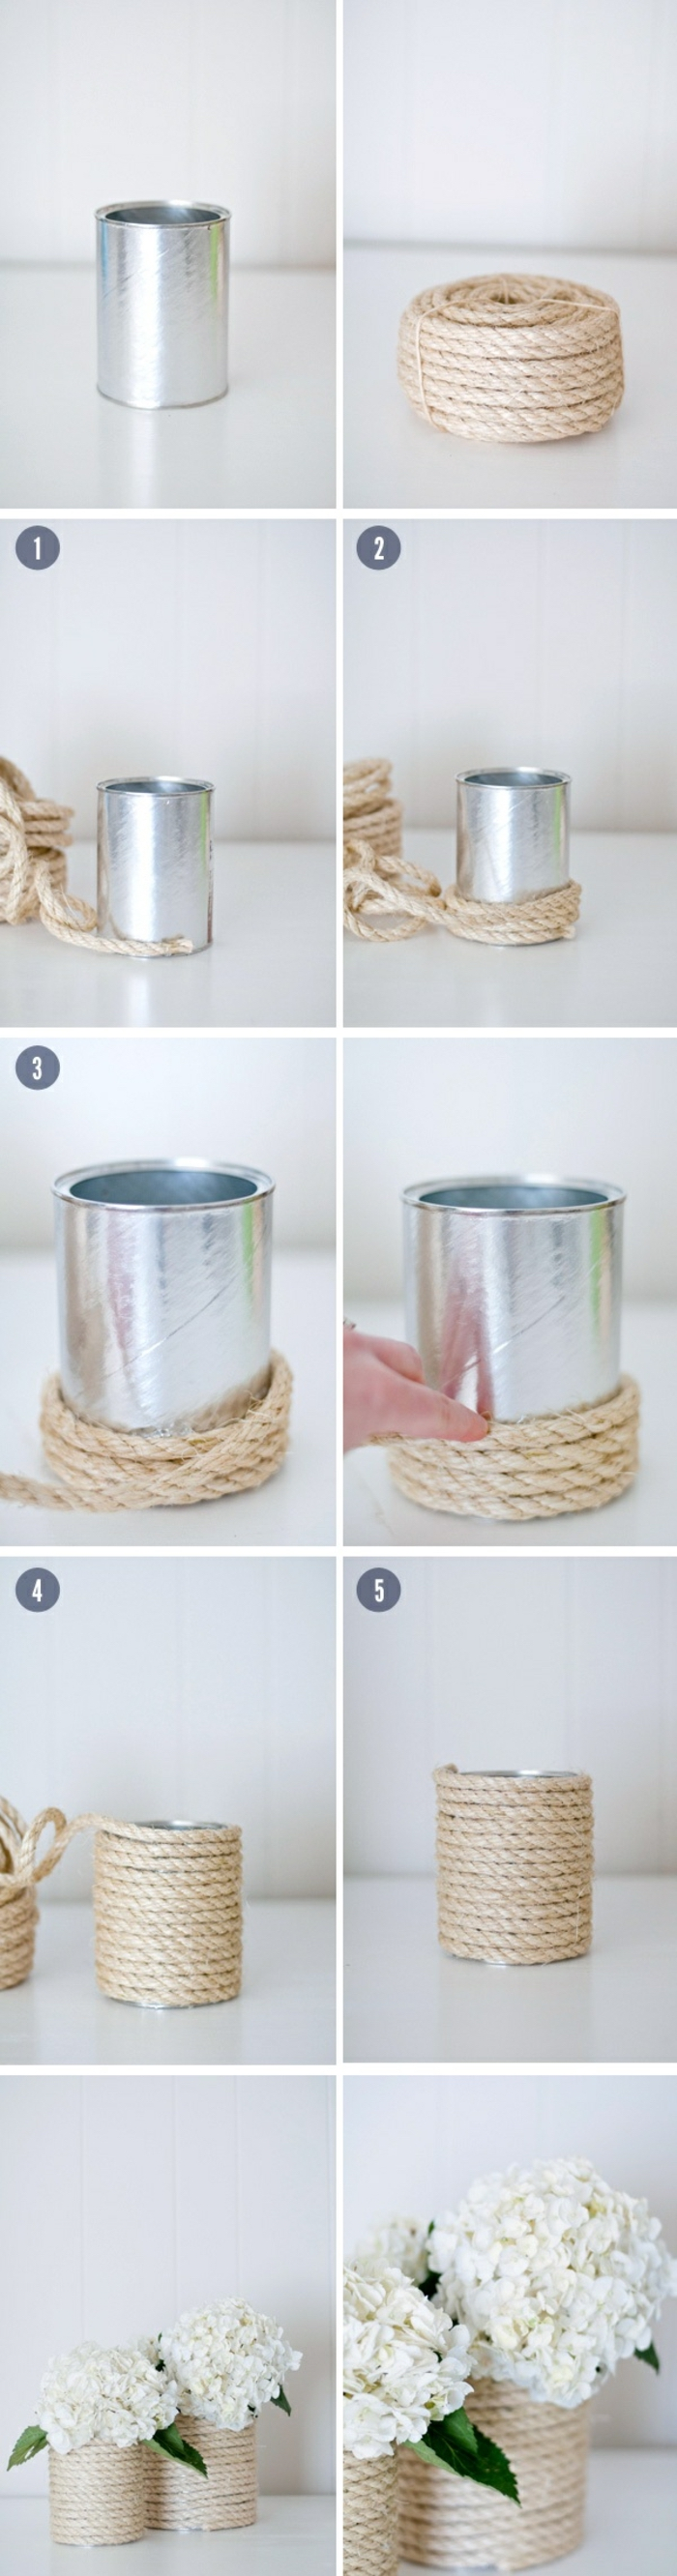 step by step, diy tutorial, diys for teens, metal can, yarn around it, white flower bouquets